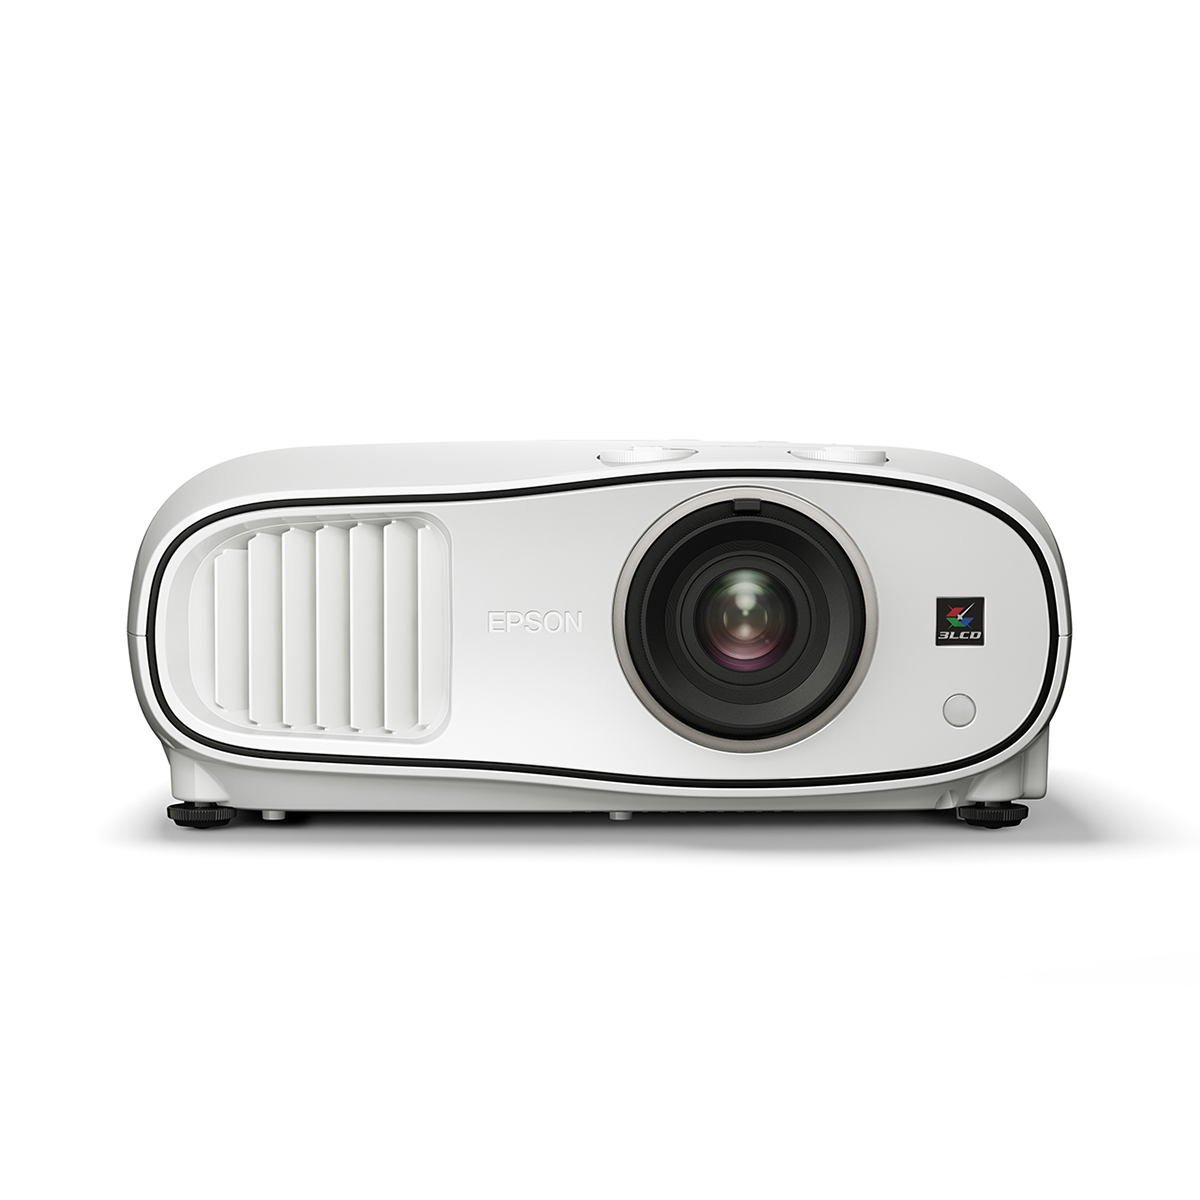 Epson EH-TW6700W 3LCD Home Cinema Projector